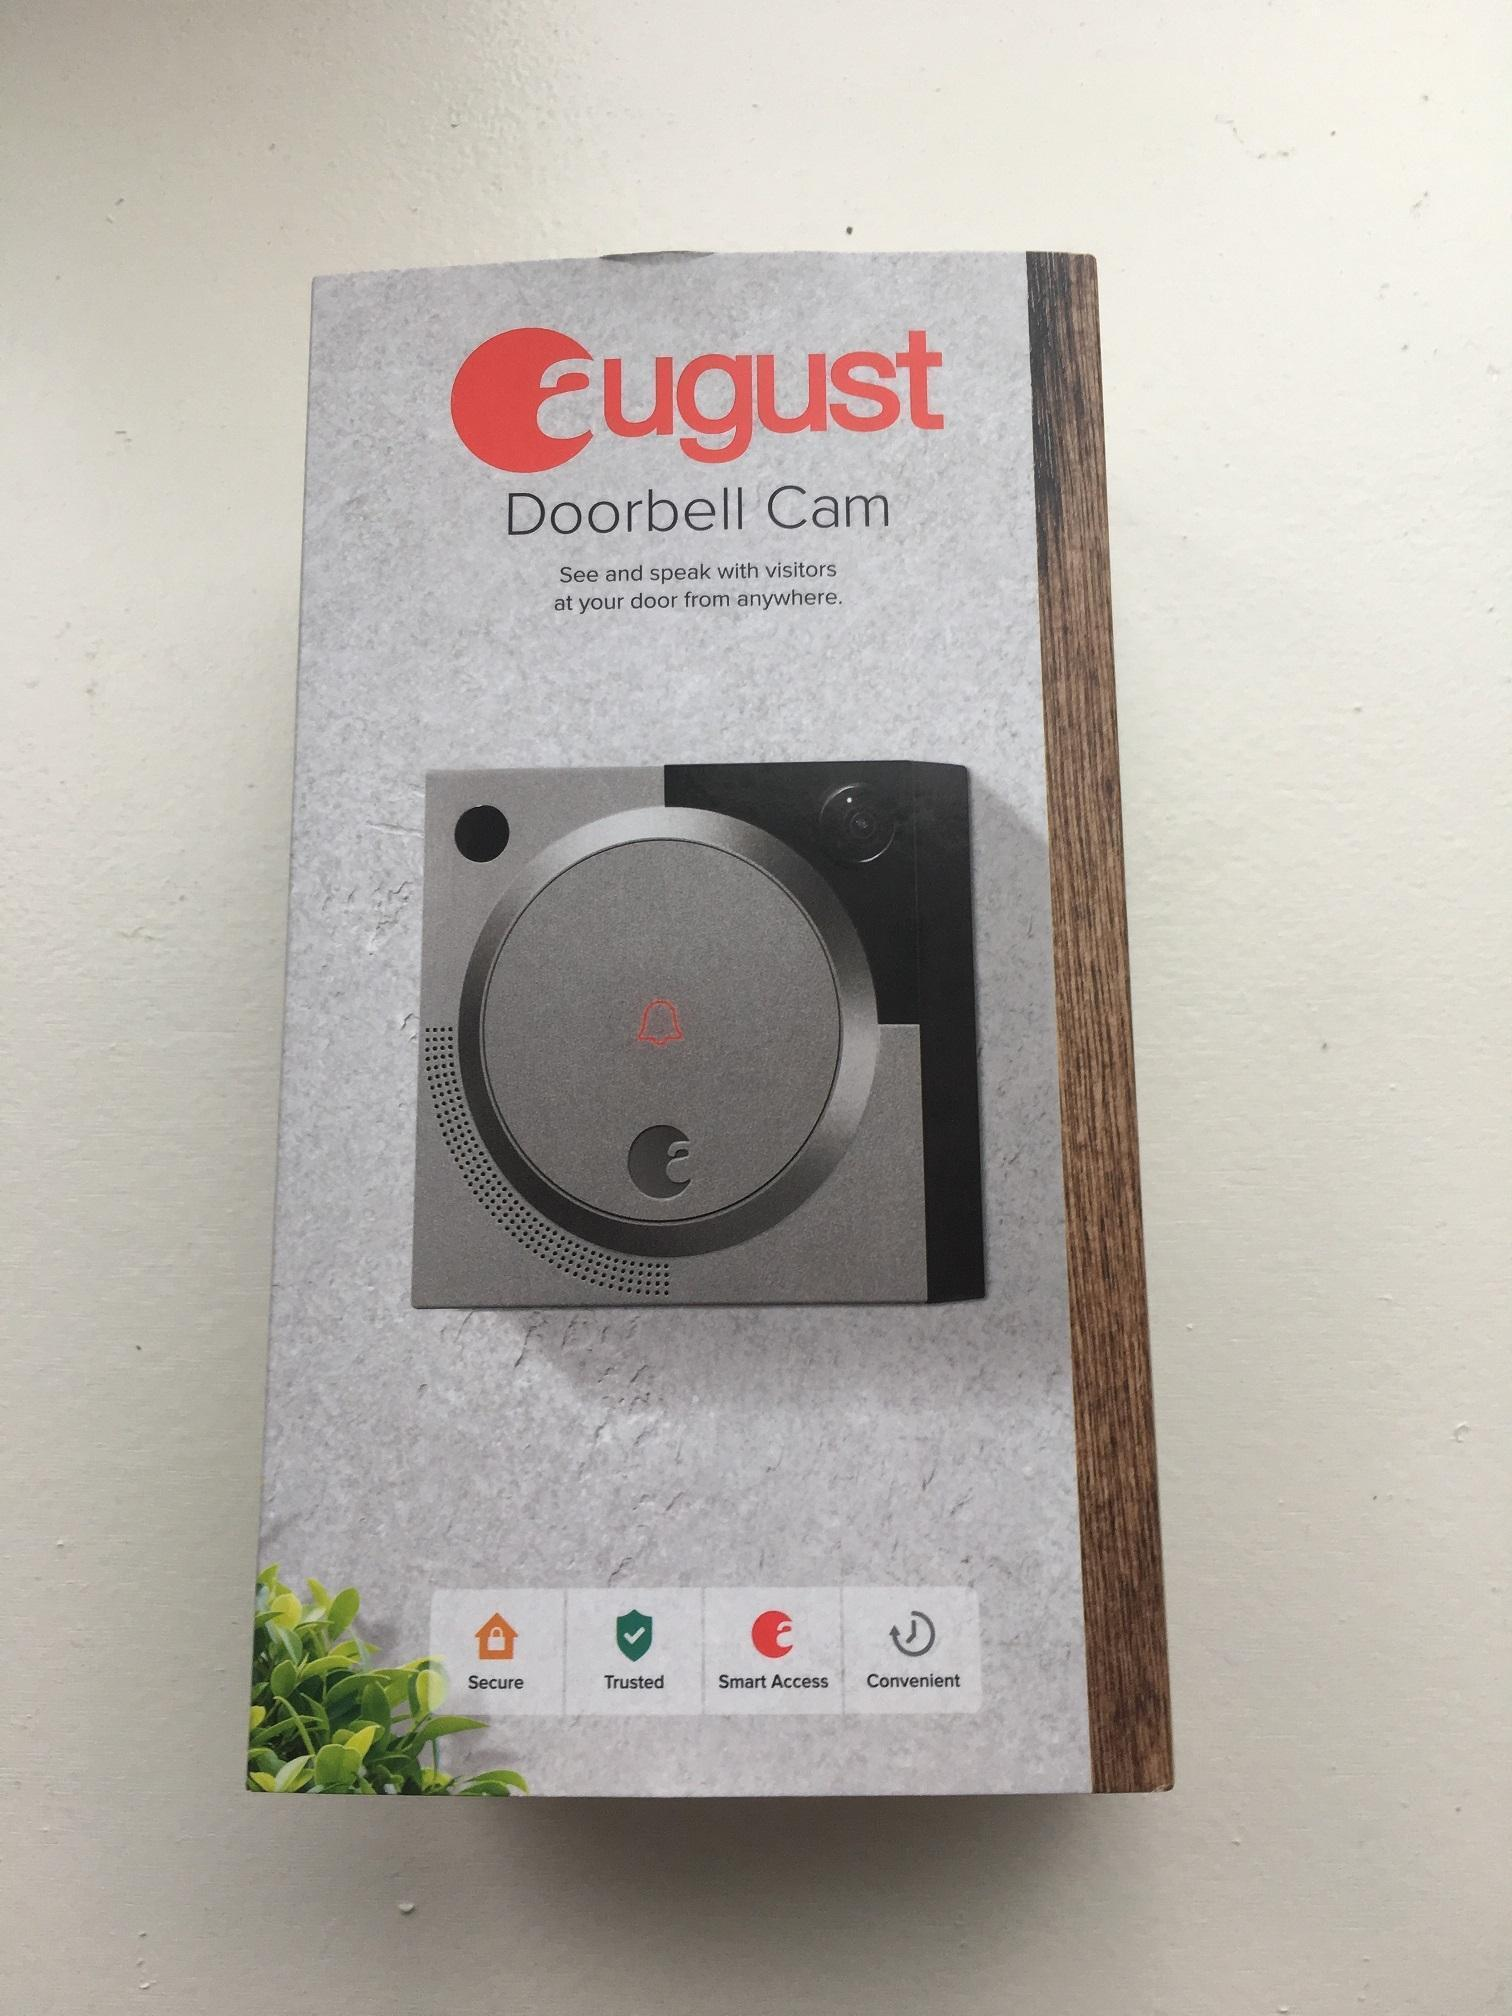 How to install August Doorbell Cam